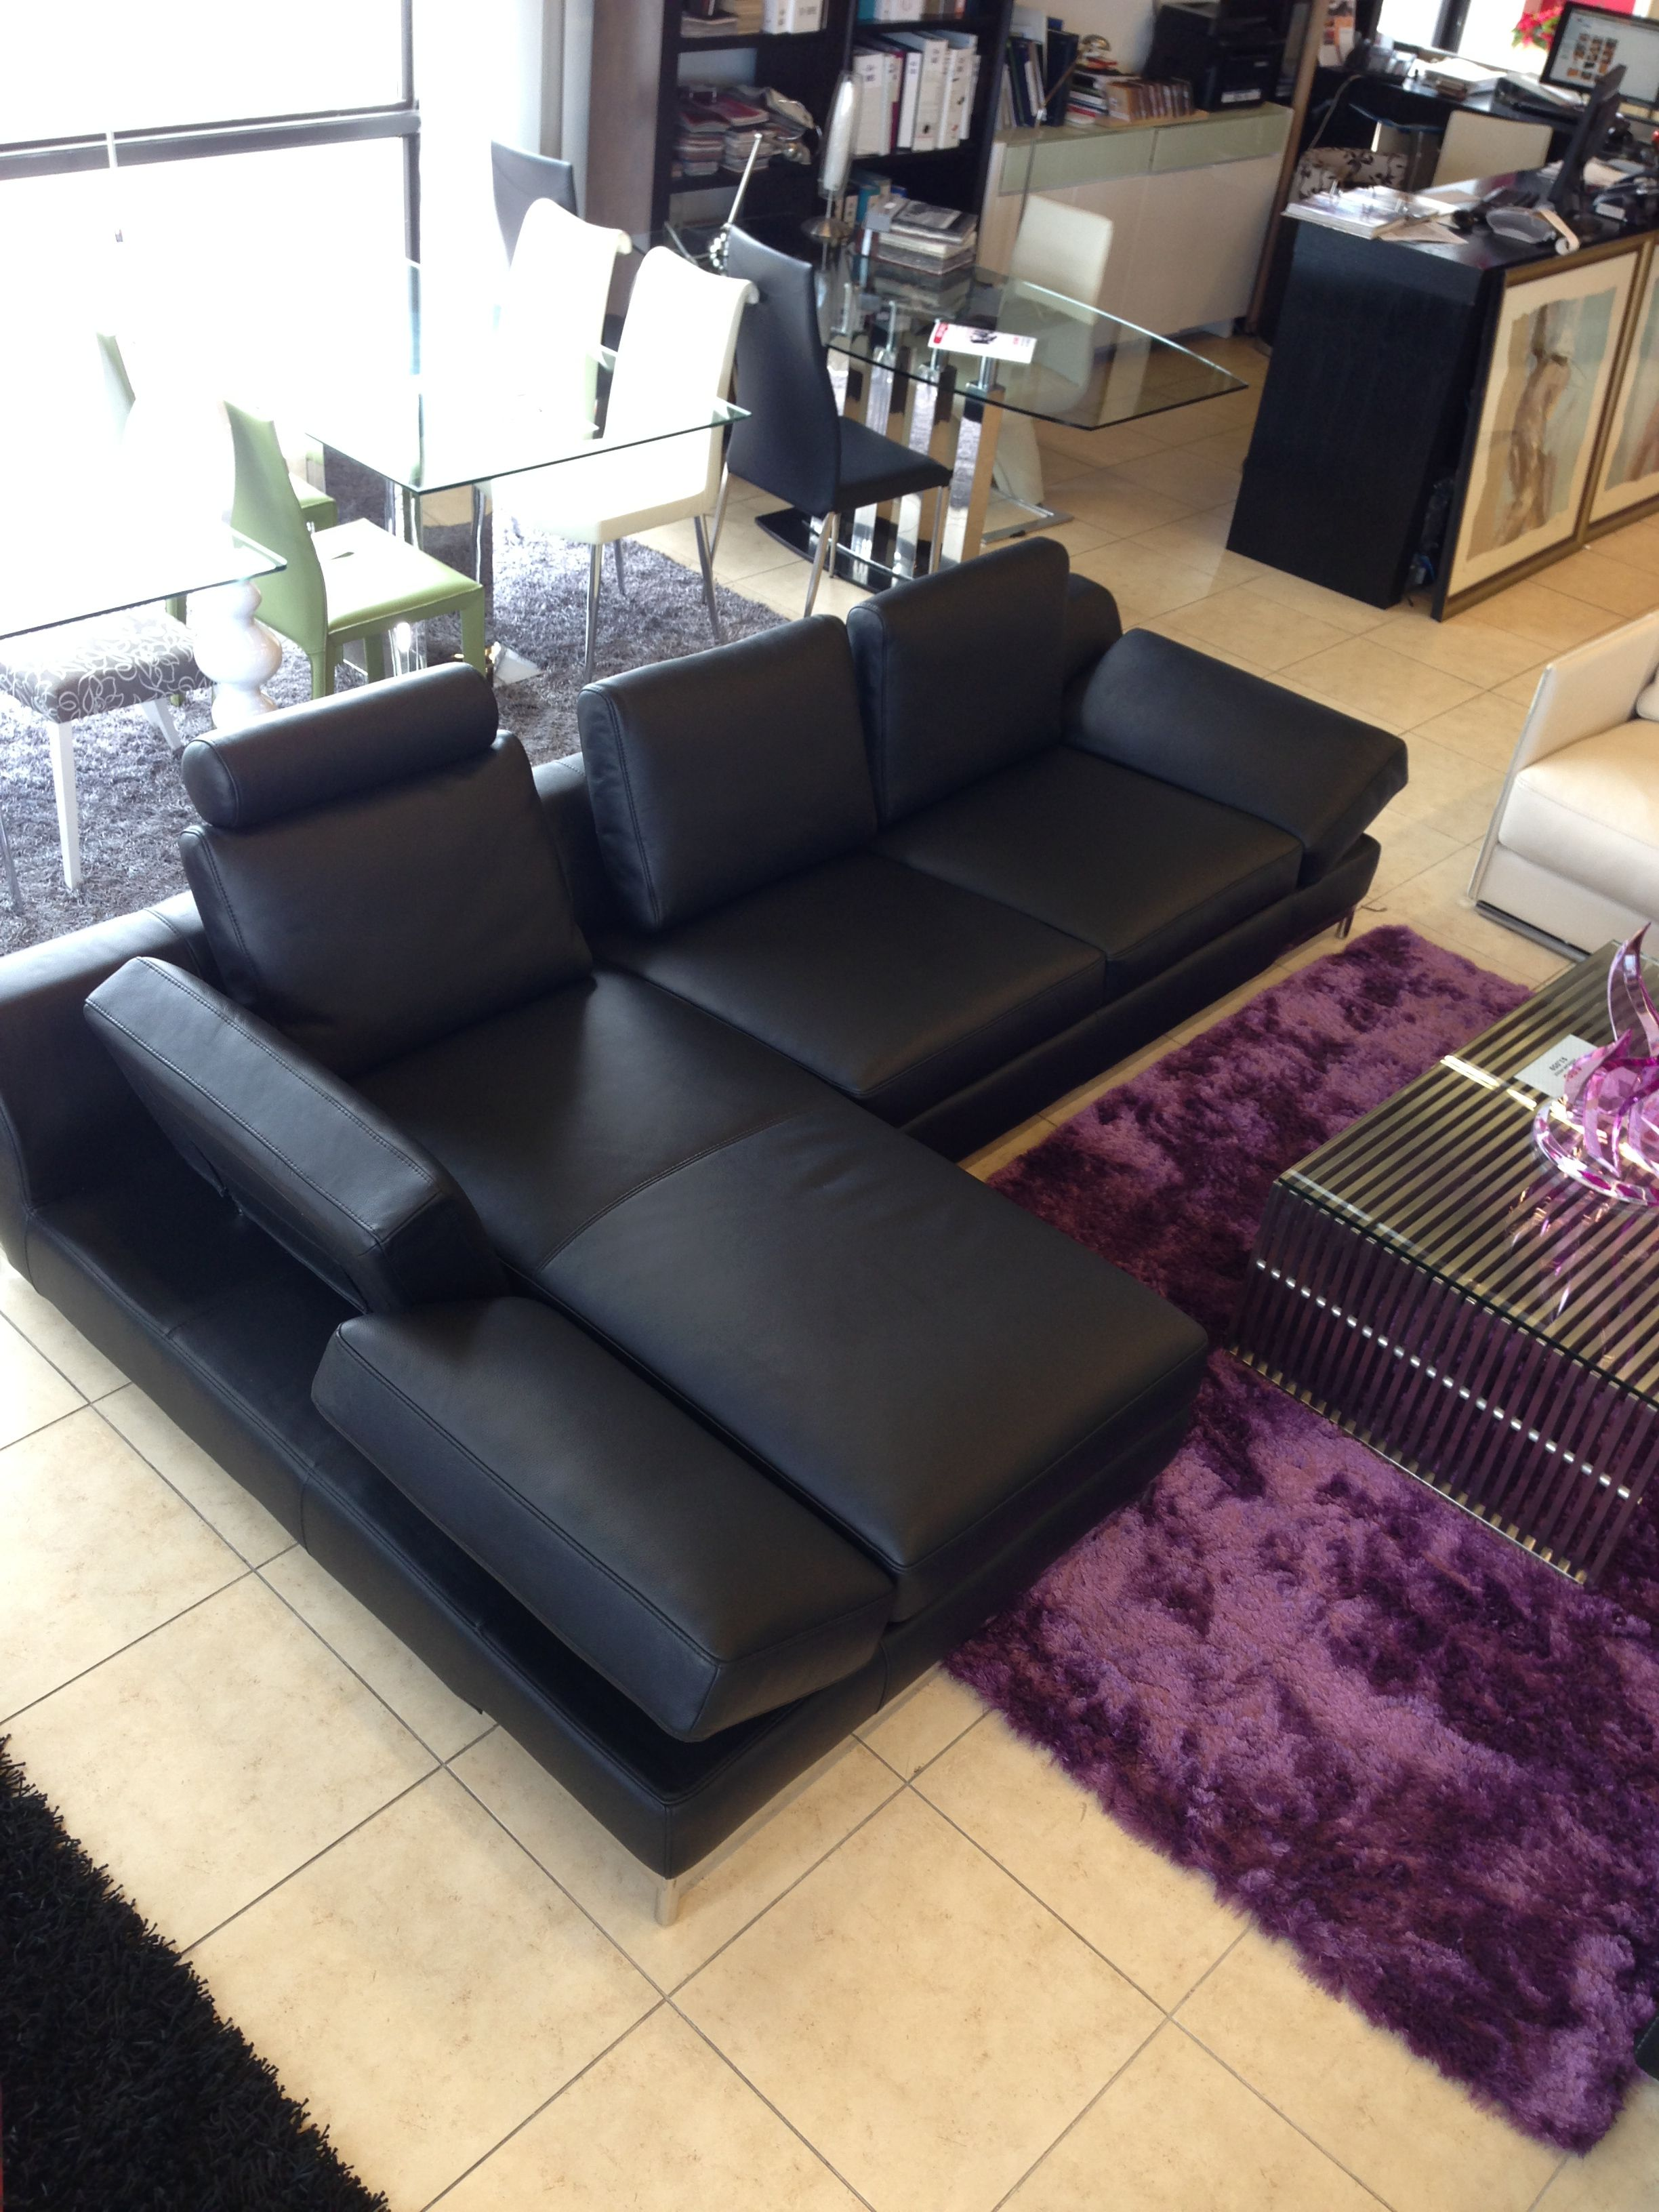 All Leather Sectional Sofa Furniture Toronto 4899 Sectional Sofa Furniture Sectional